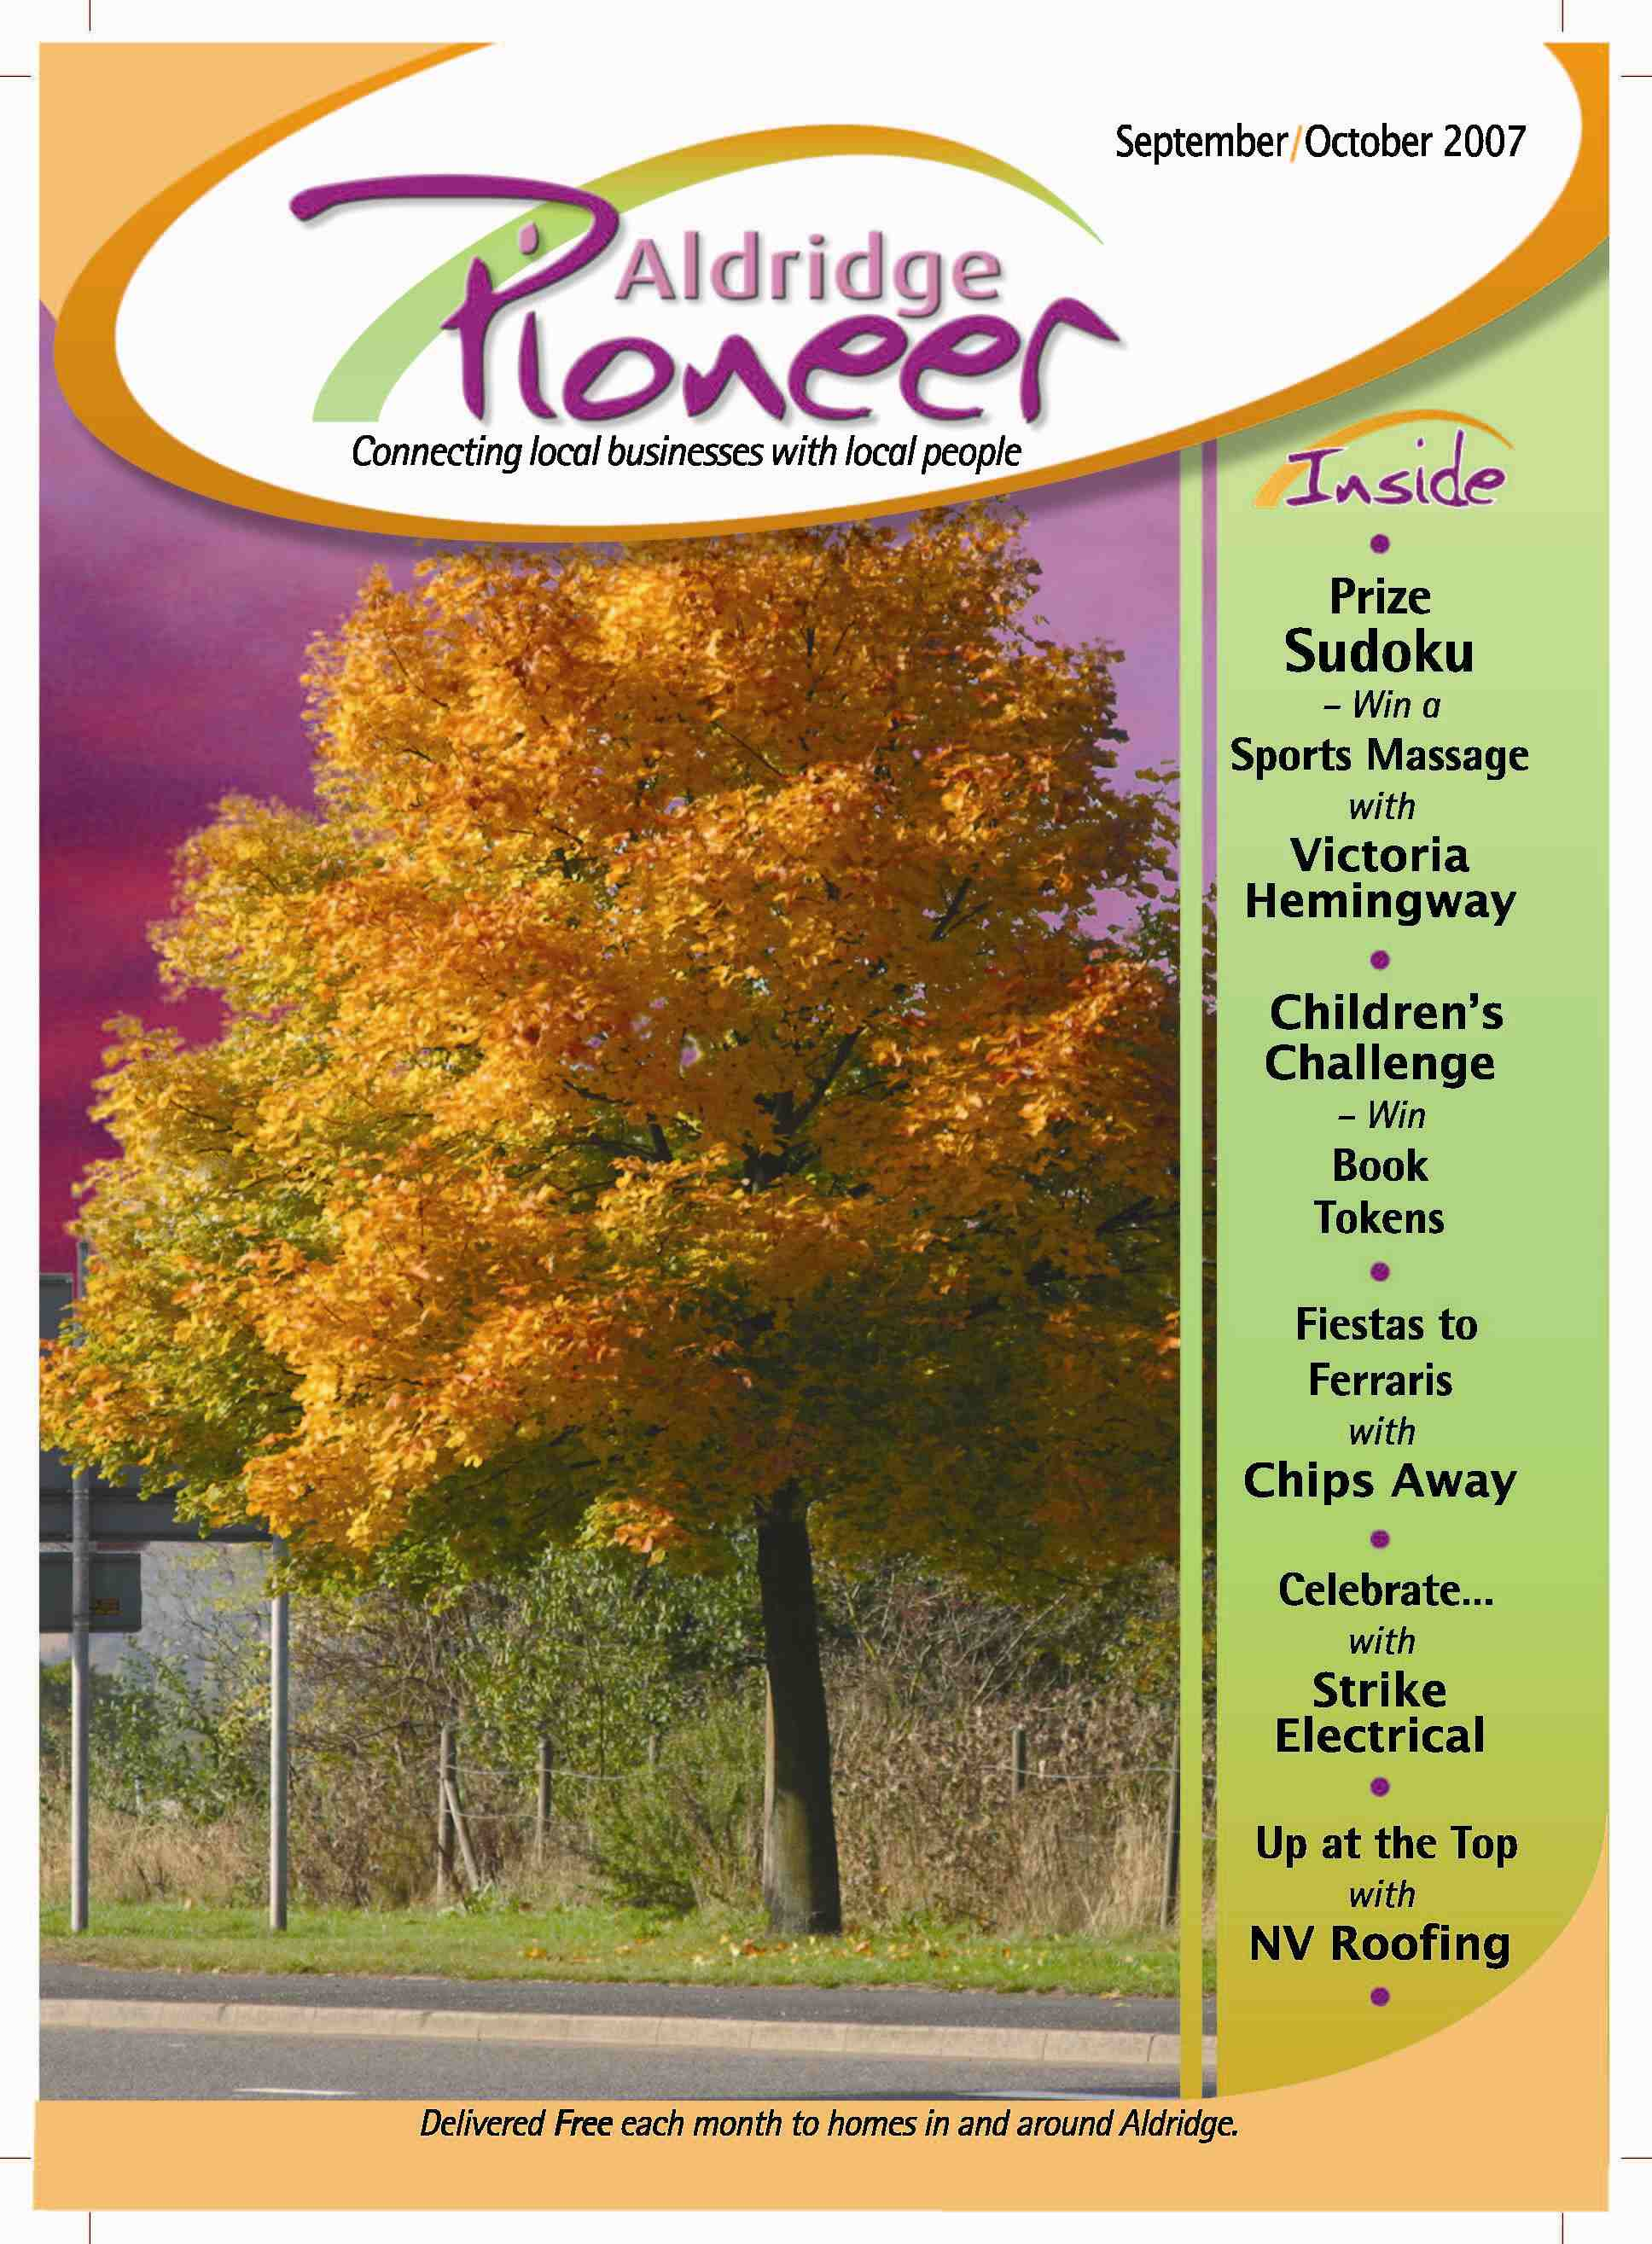 September 2007 Edition of Aldridge Pioneer Magazine